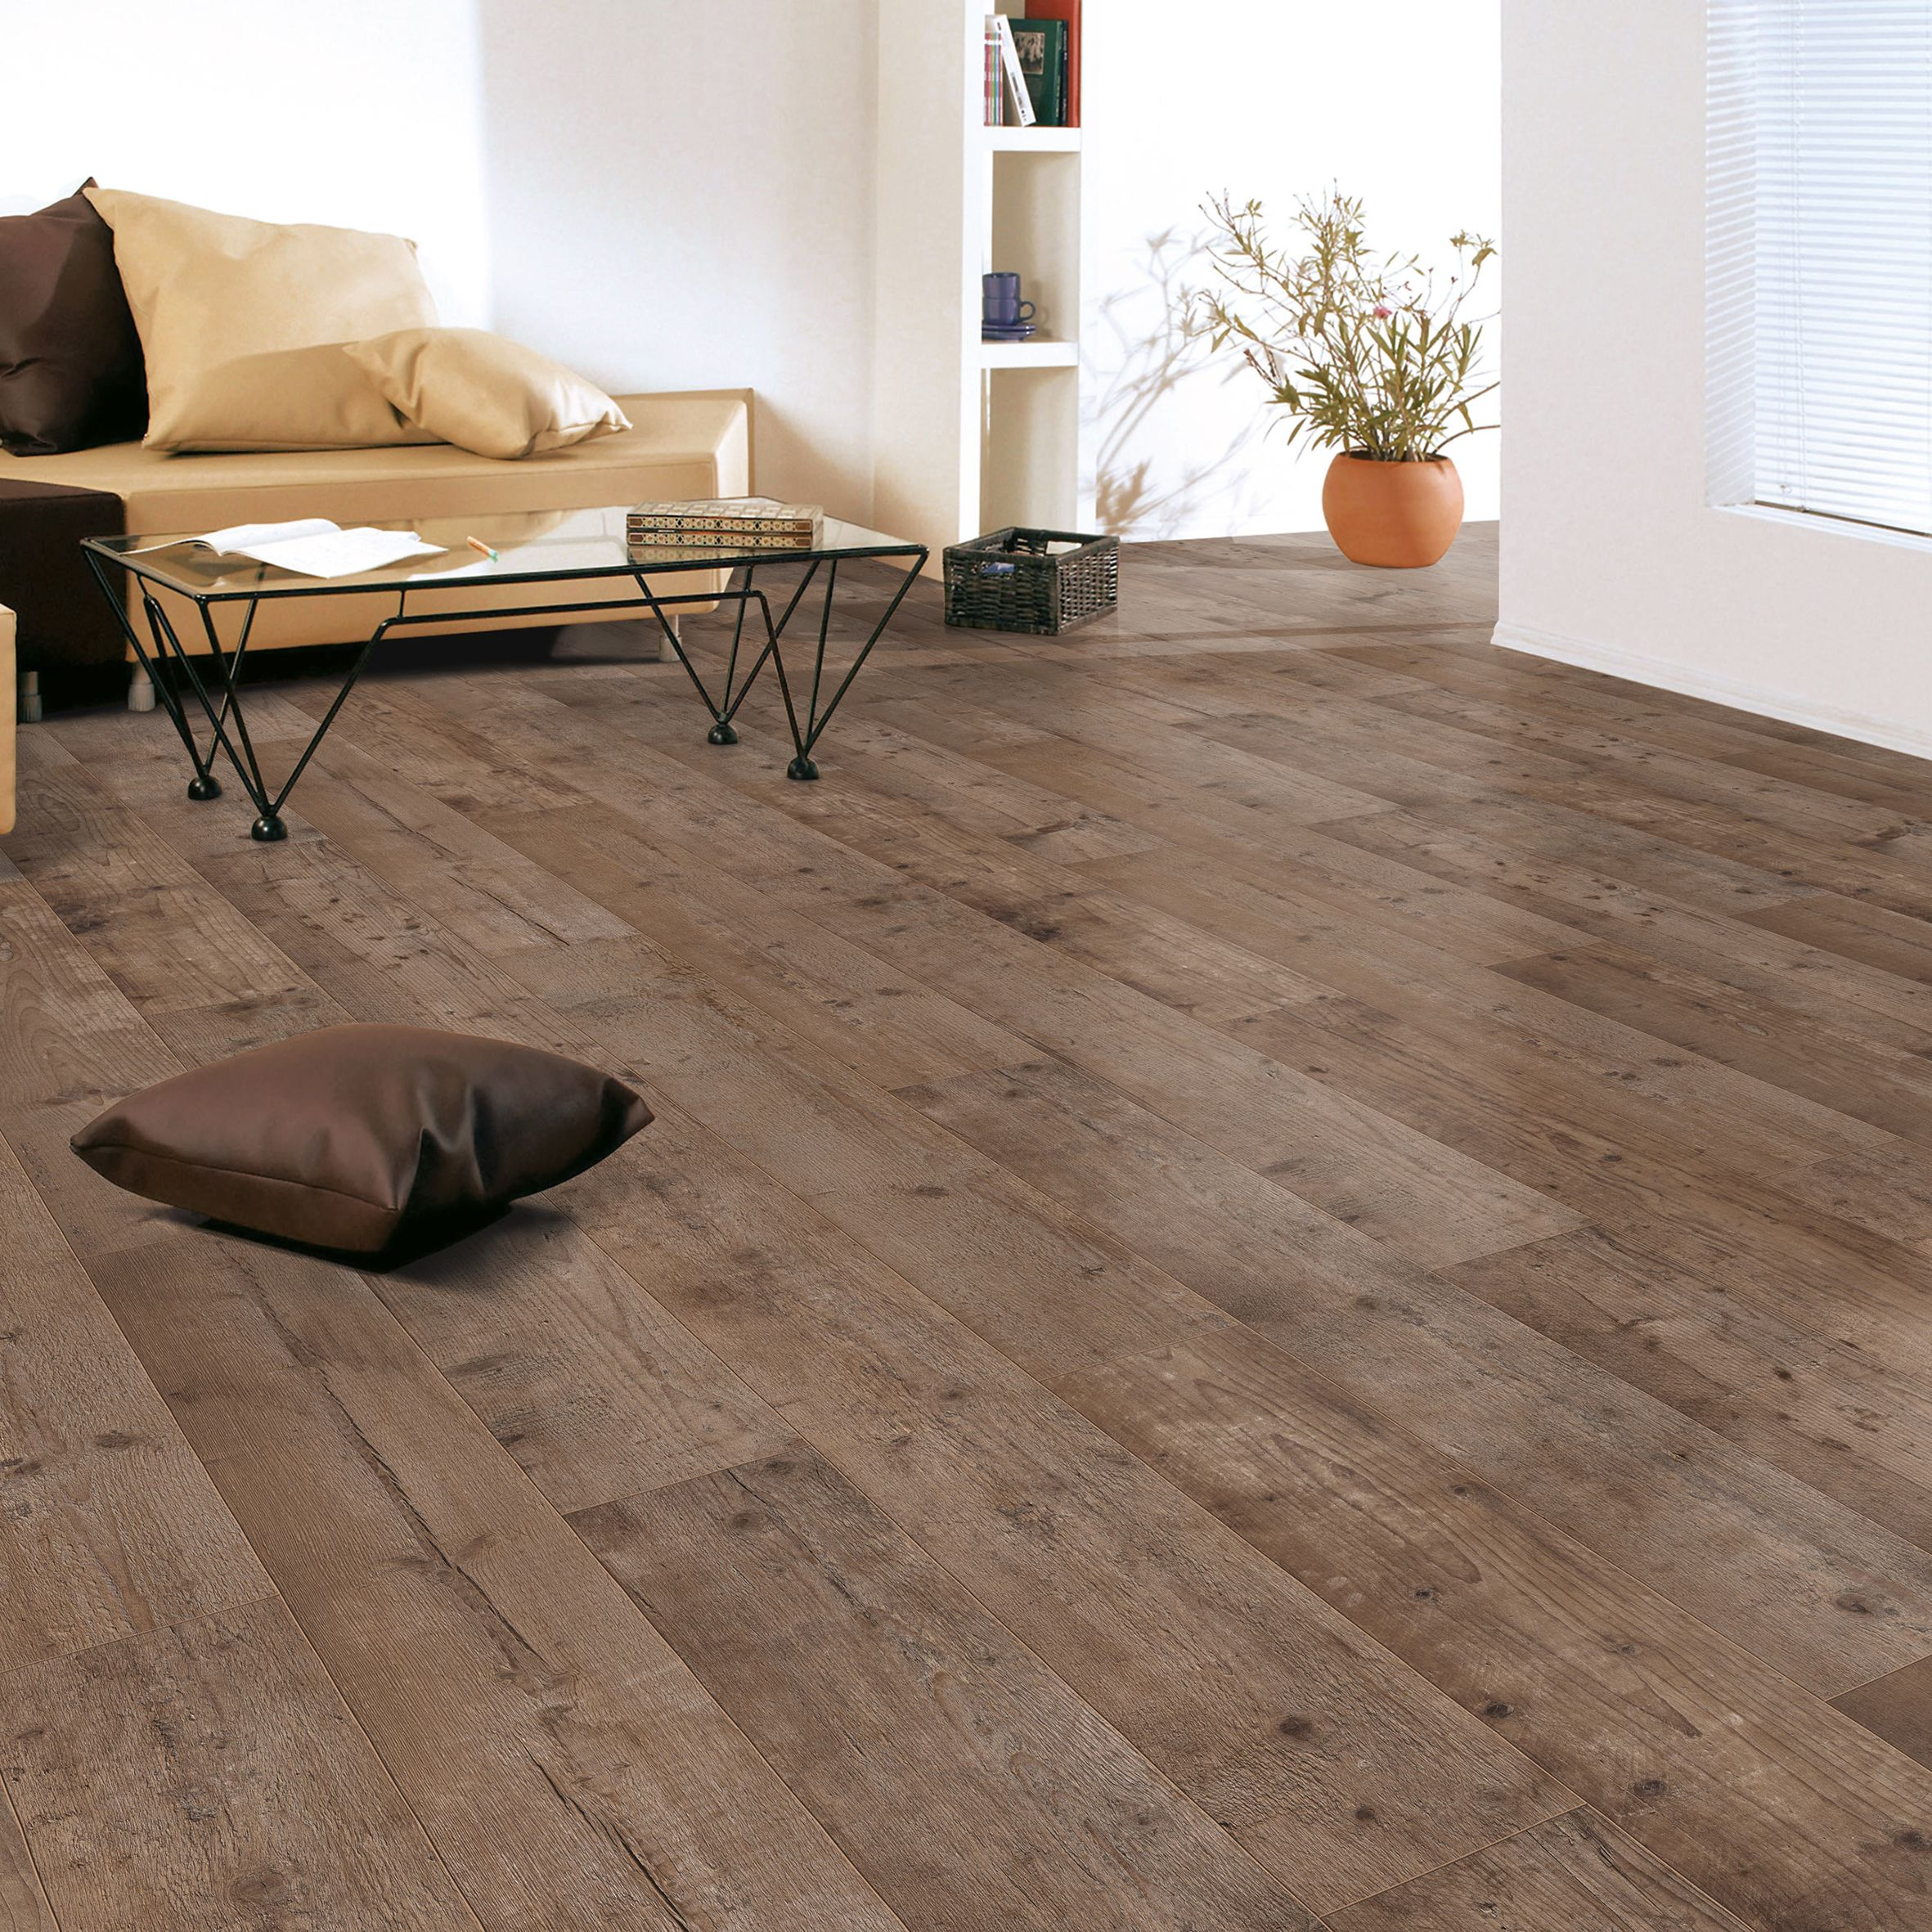 Sicily laminate flooring 199 m pack departments diy at bq marialoaizafo  Gallery